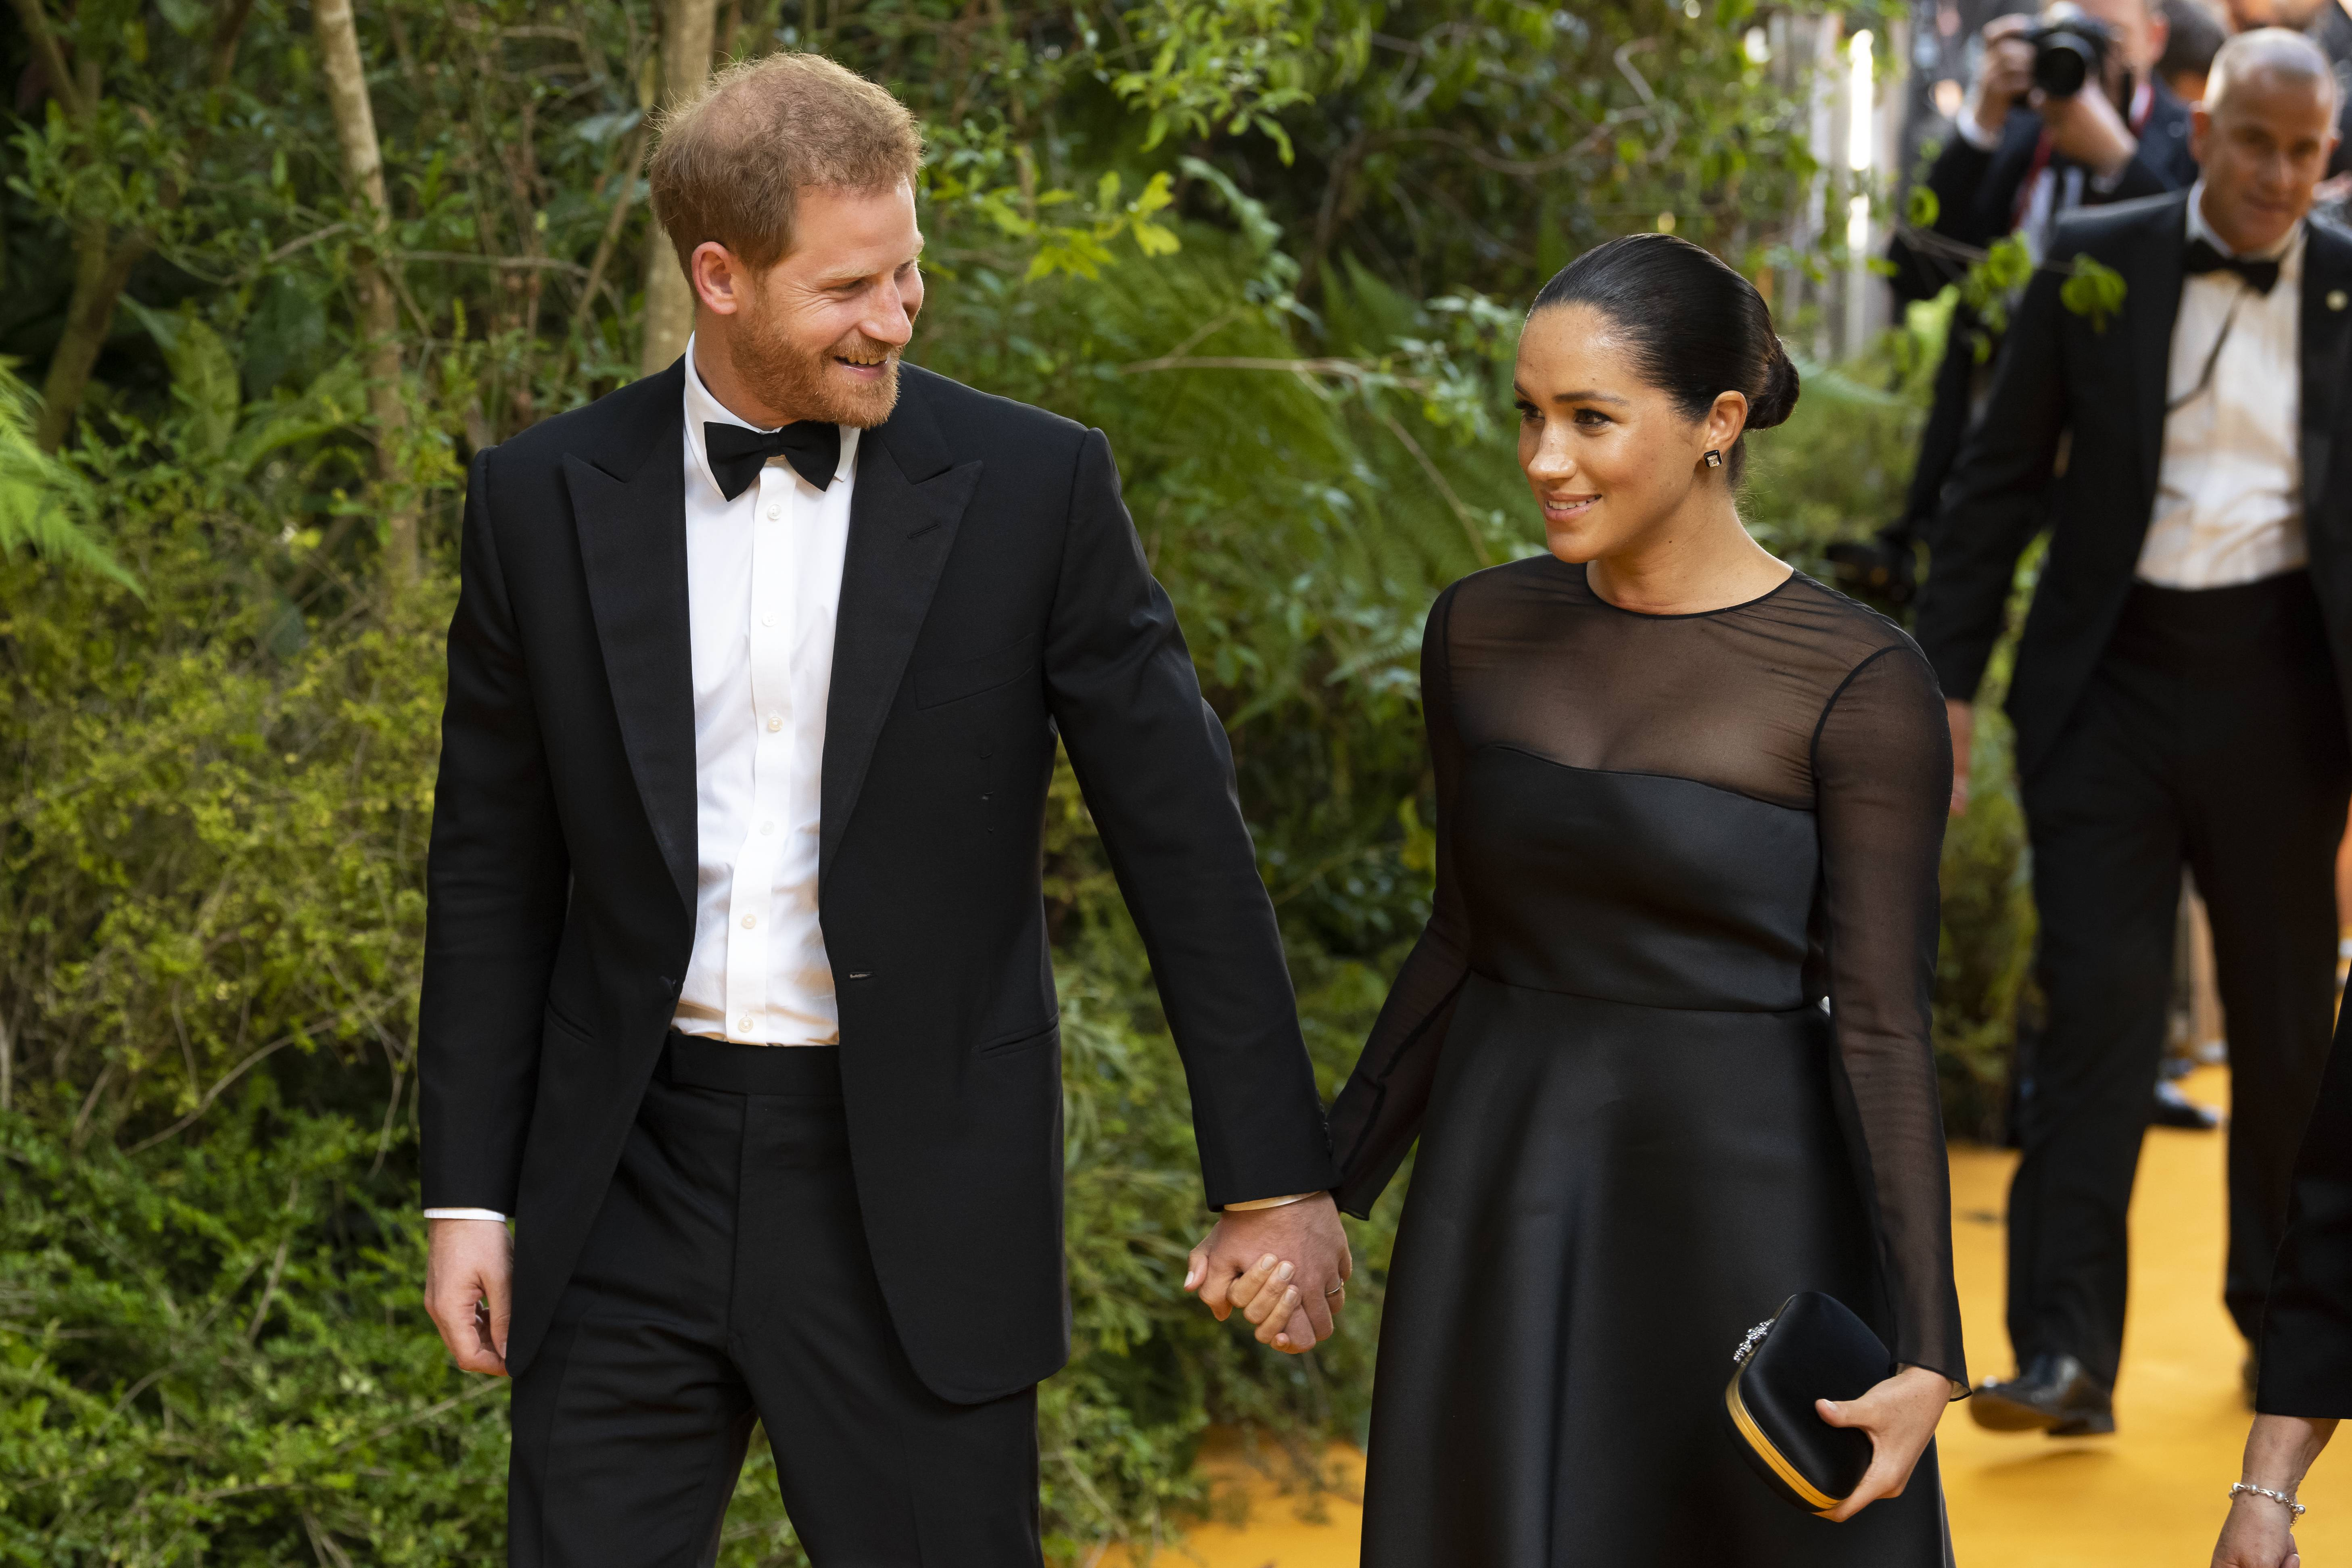 The Royal Family accused of 'throwing Meghan Markle under the bus'